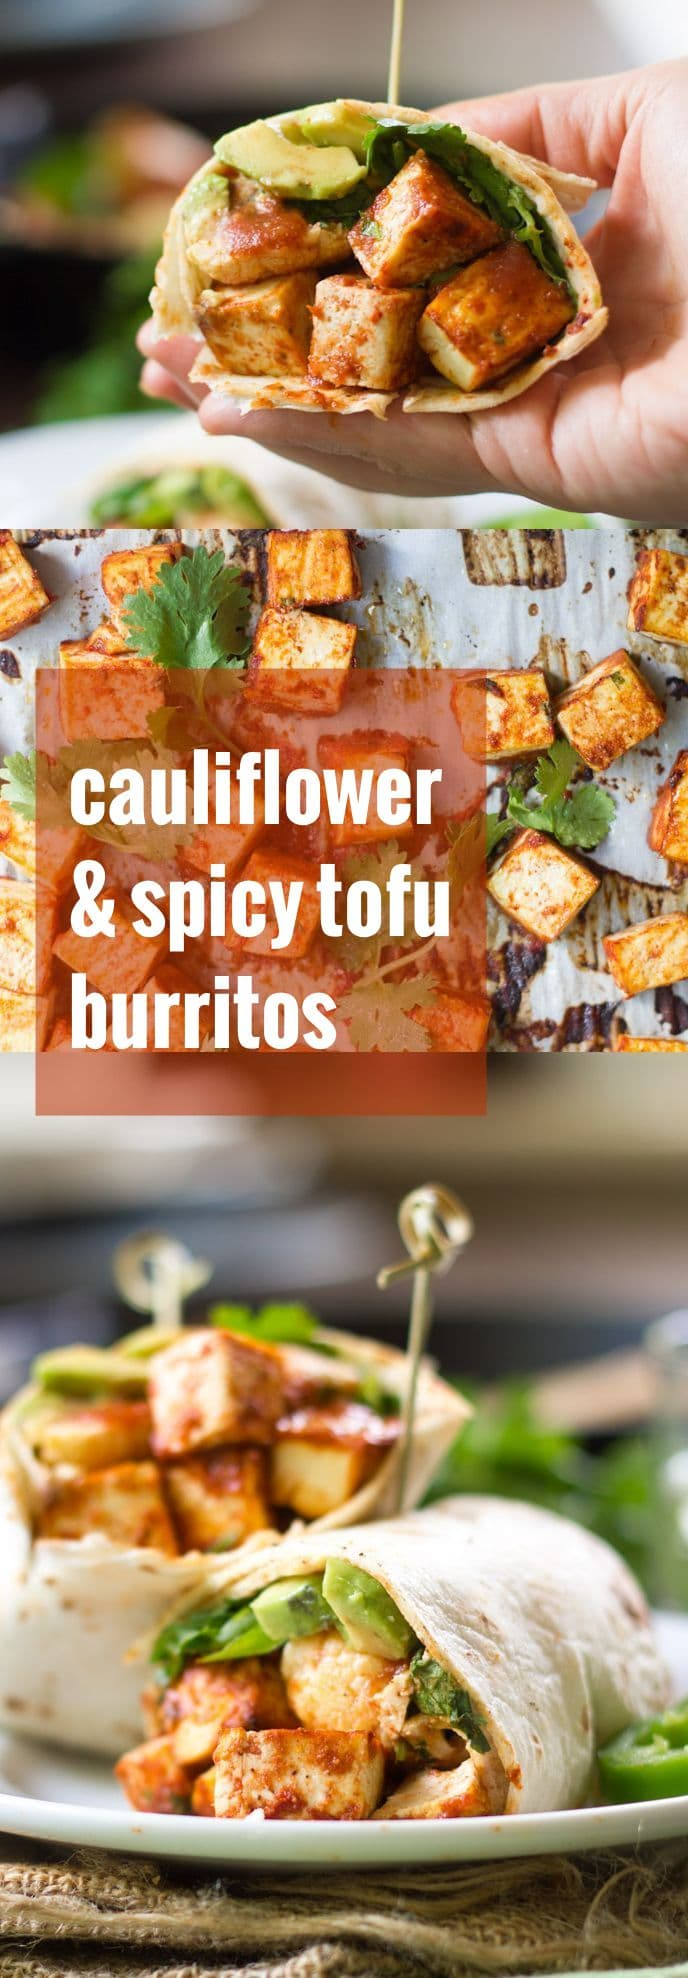 Garlic Roasted Cauliflower and Spicy Baked Tofu Burritos